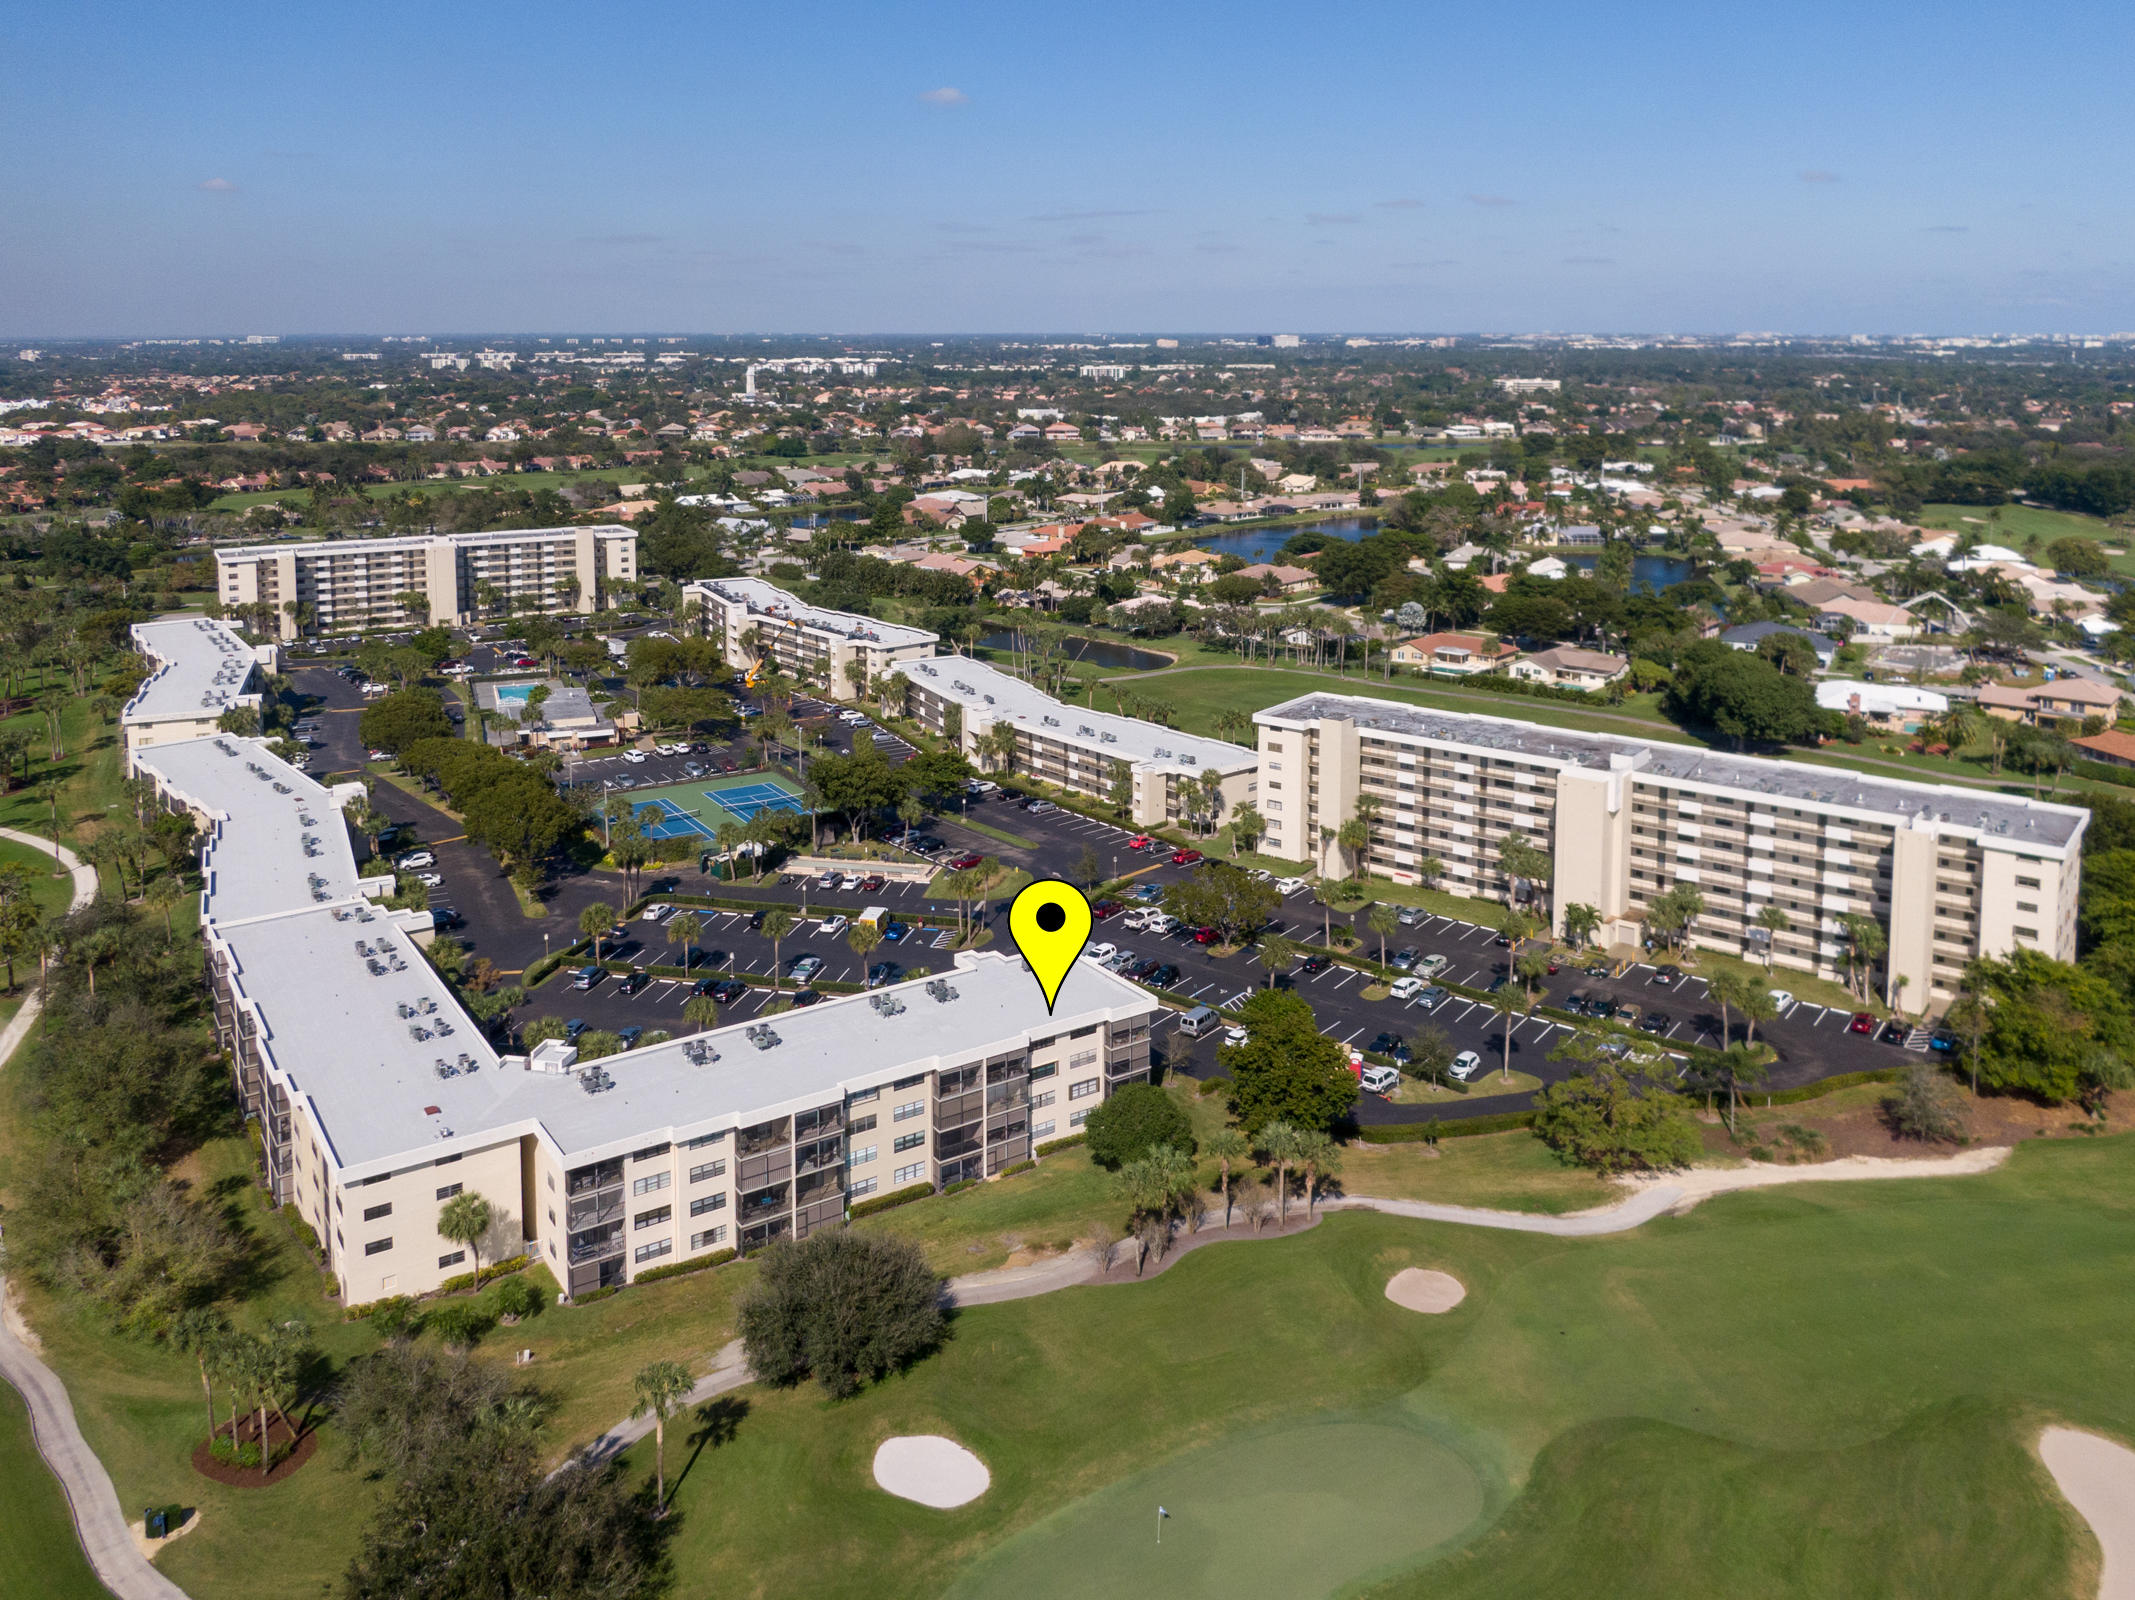 VACANT AND MOVE IN READY! TOTALLY UPDATED FIRST FLOOR CORNER UNIT!! NEW KITCHEN, NEW BATHROOMS,NEW FLOORING, NEW ELECTRICAL PANEL, EXTREMELY LIGHT AND BRIGHT OVERLOOKING THE GOLF COURSE, NO MANDATORY  MEMBERSHIP REQUIRED, ALL AGES, HEATED POOL, TENNIS COURTS, COMMUNITY ROOM, SAUNA AND GYM. ONLY 4 MILES TO DEERFIELD BEACH, CLOSE TO DINING, SHOPPING AND  MORE.